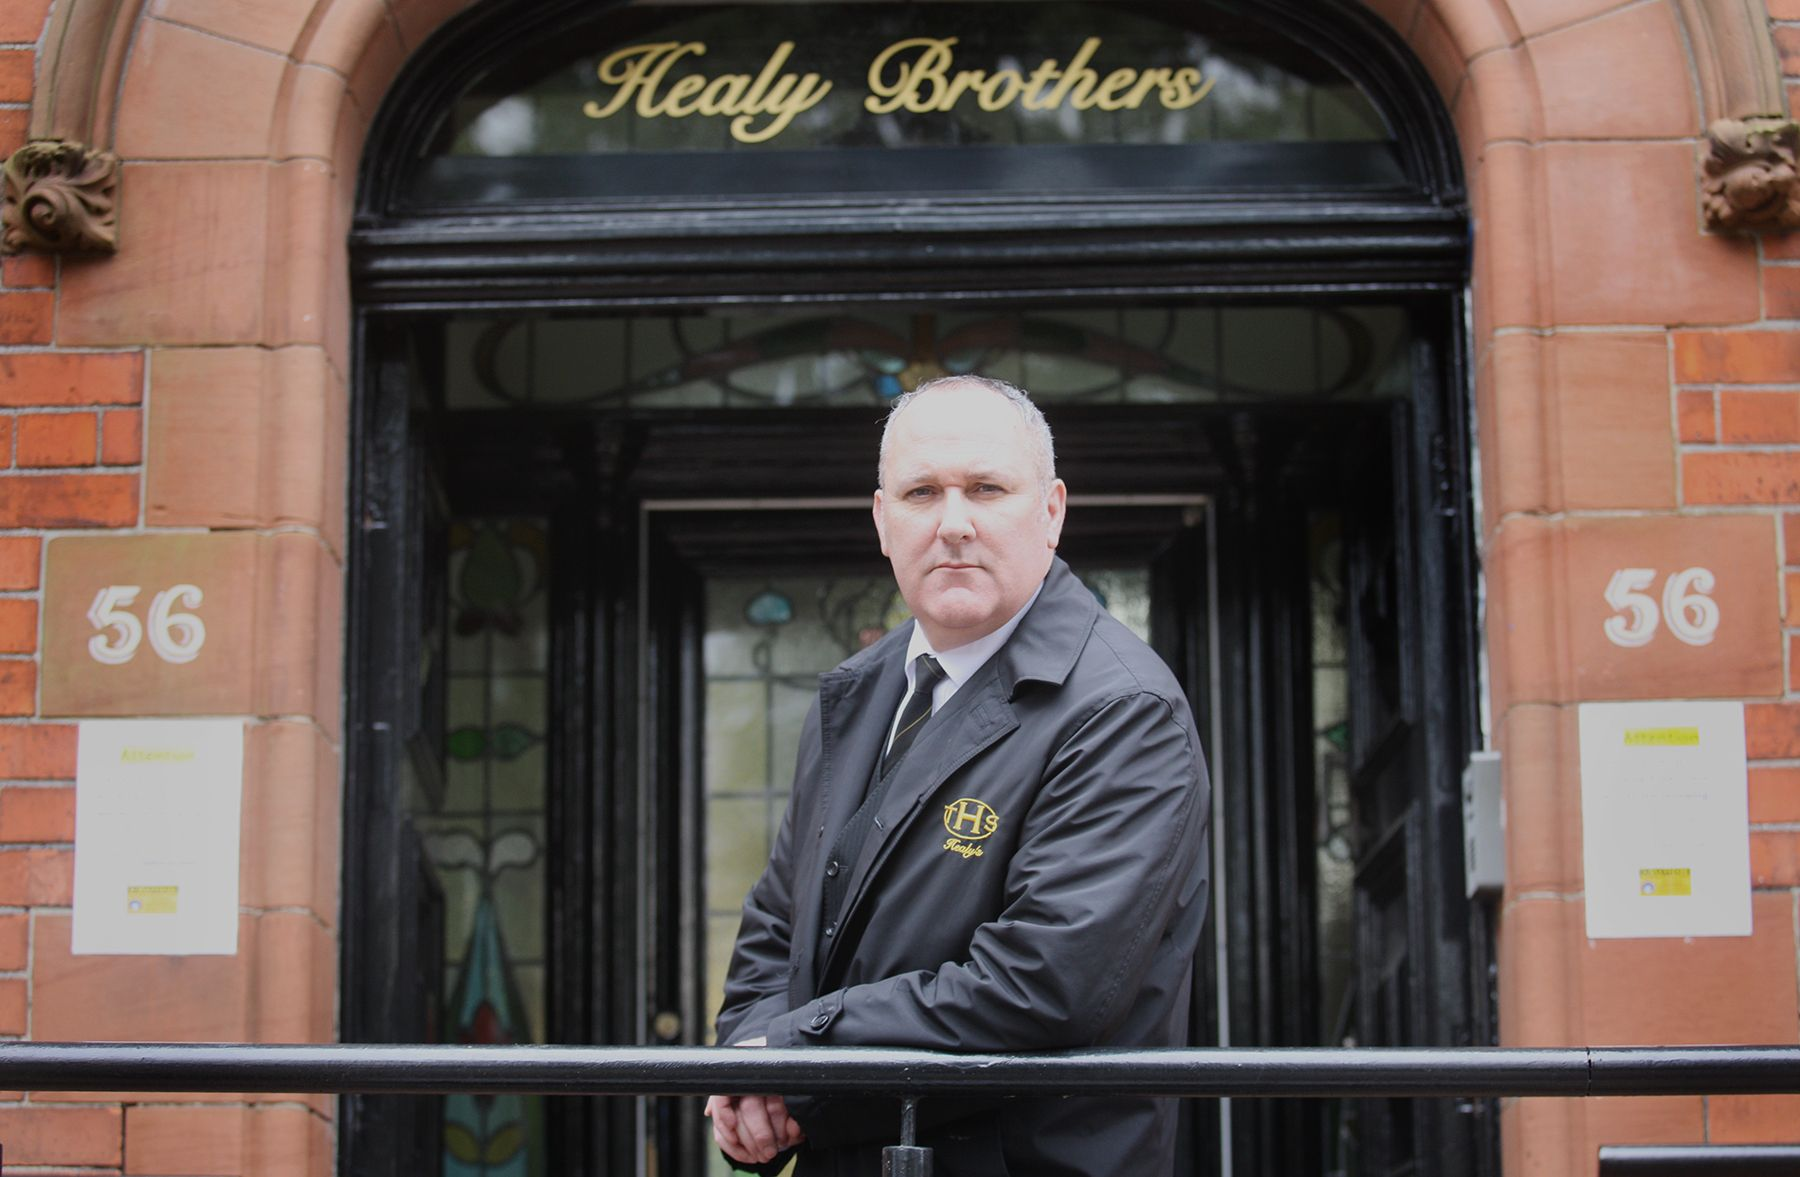 FUNERAL CONCERNS: Undertaker Sean Healy from Healy Brothers